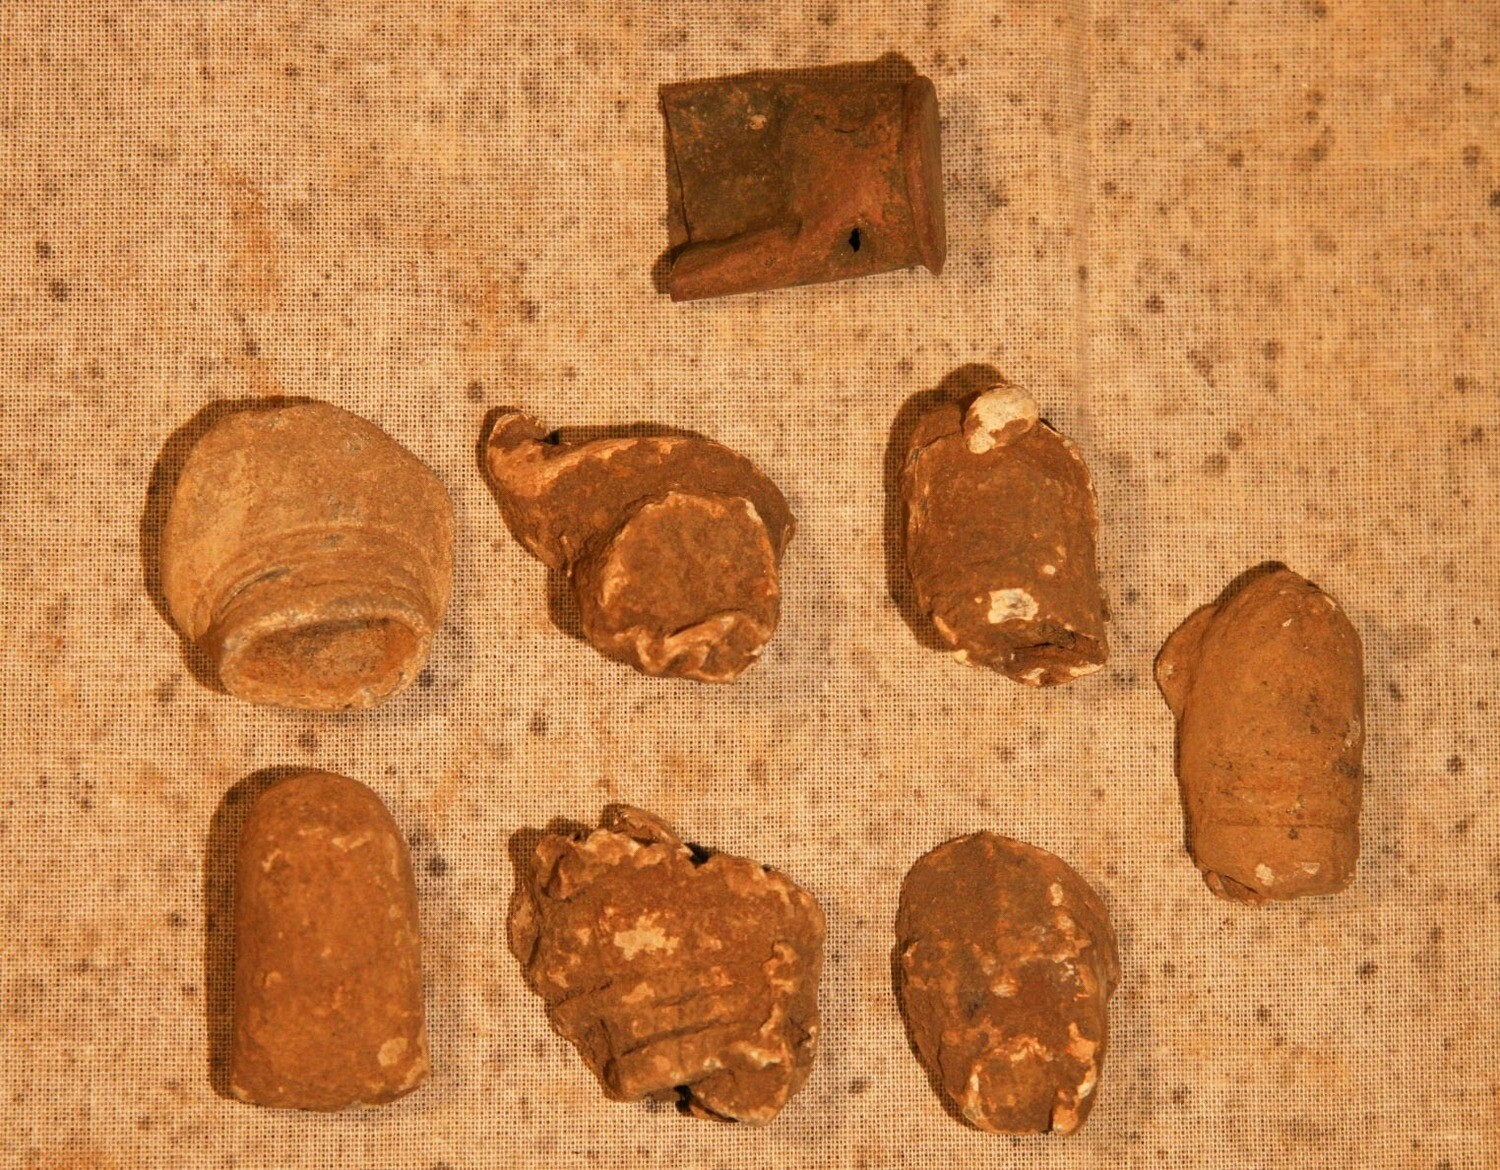 JUST ADDED ON 6/19 - AEON CHURCH NEAR TOTOPOTOMOY - Seven Fired Bullets and a Spencer Casing